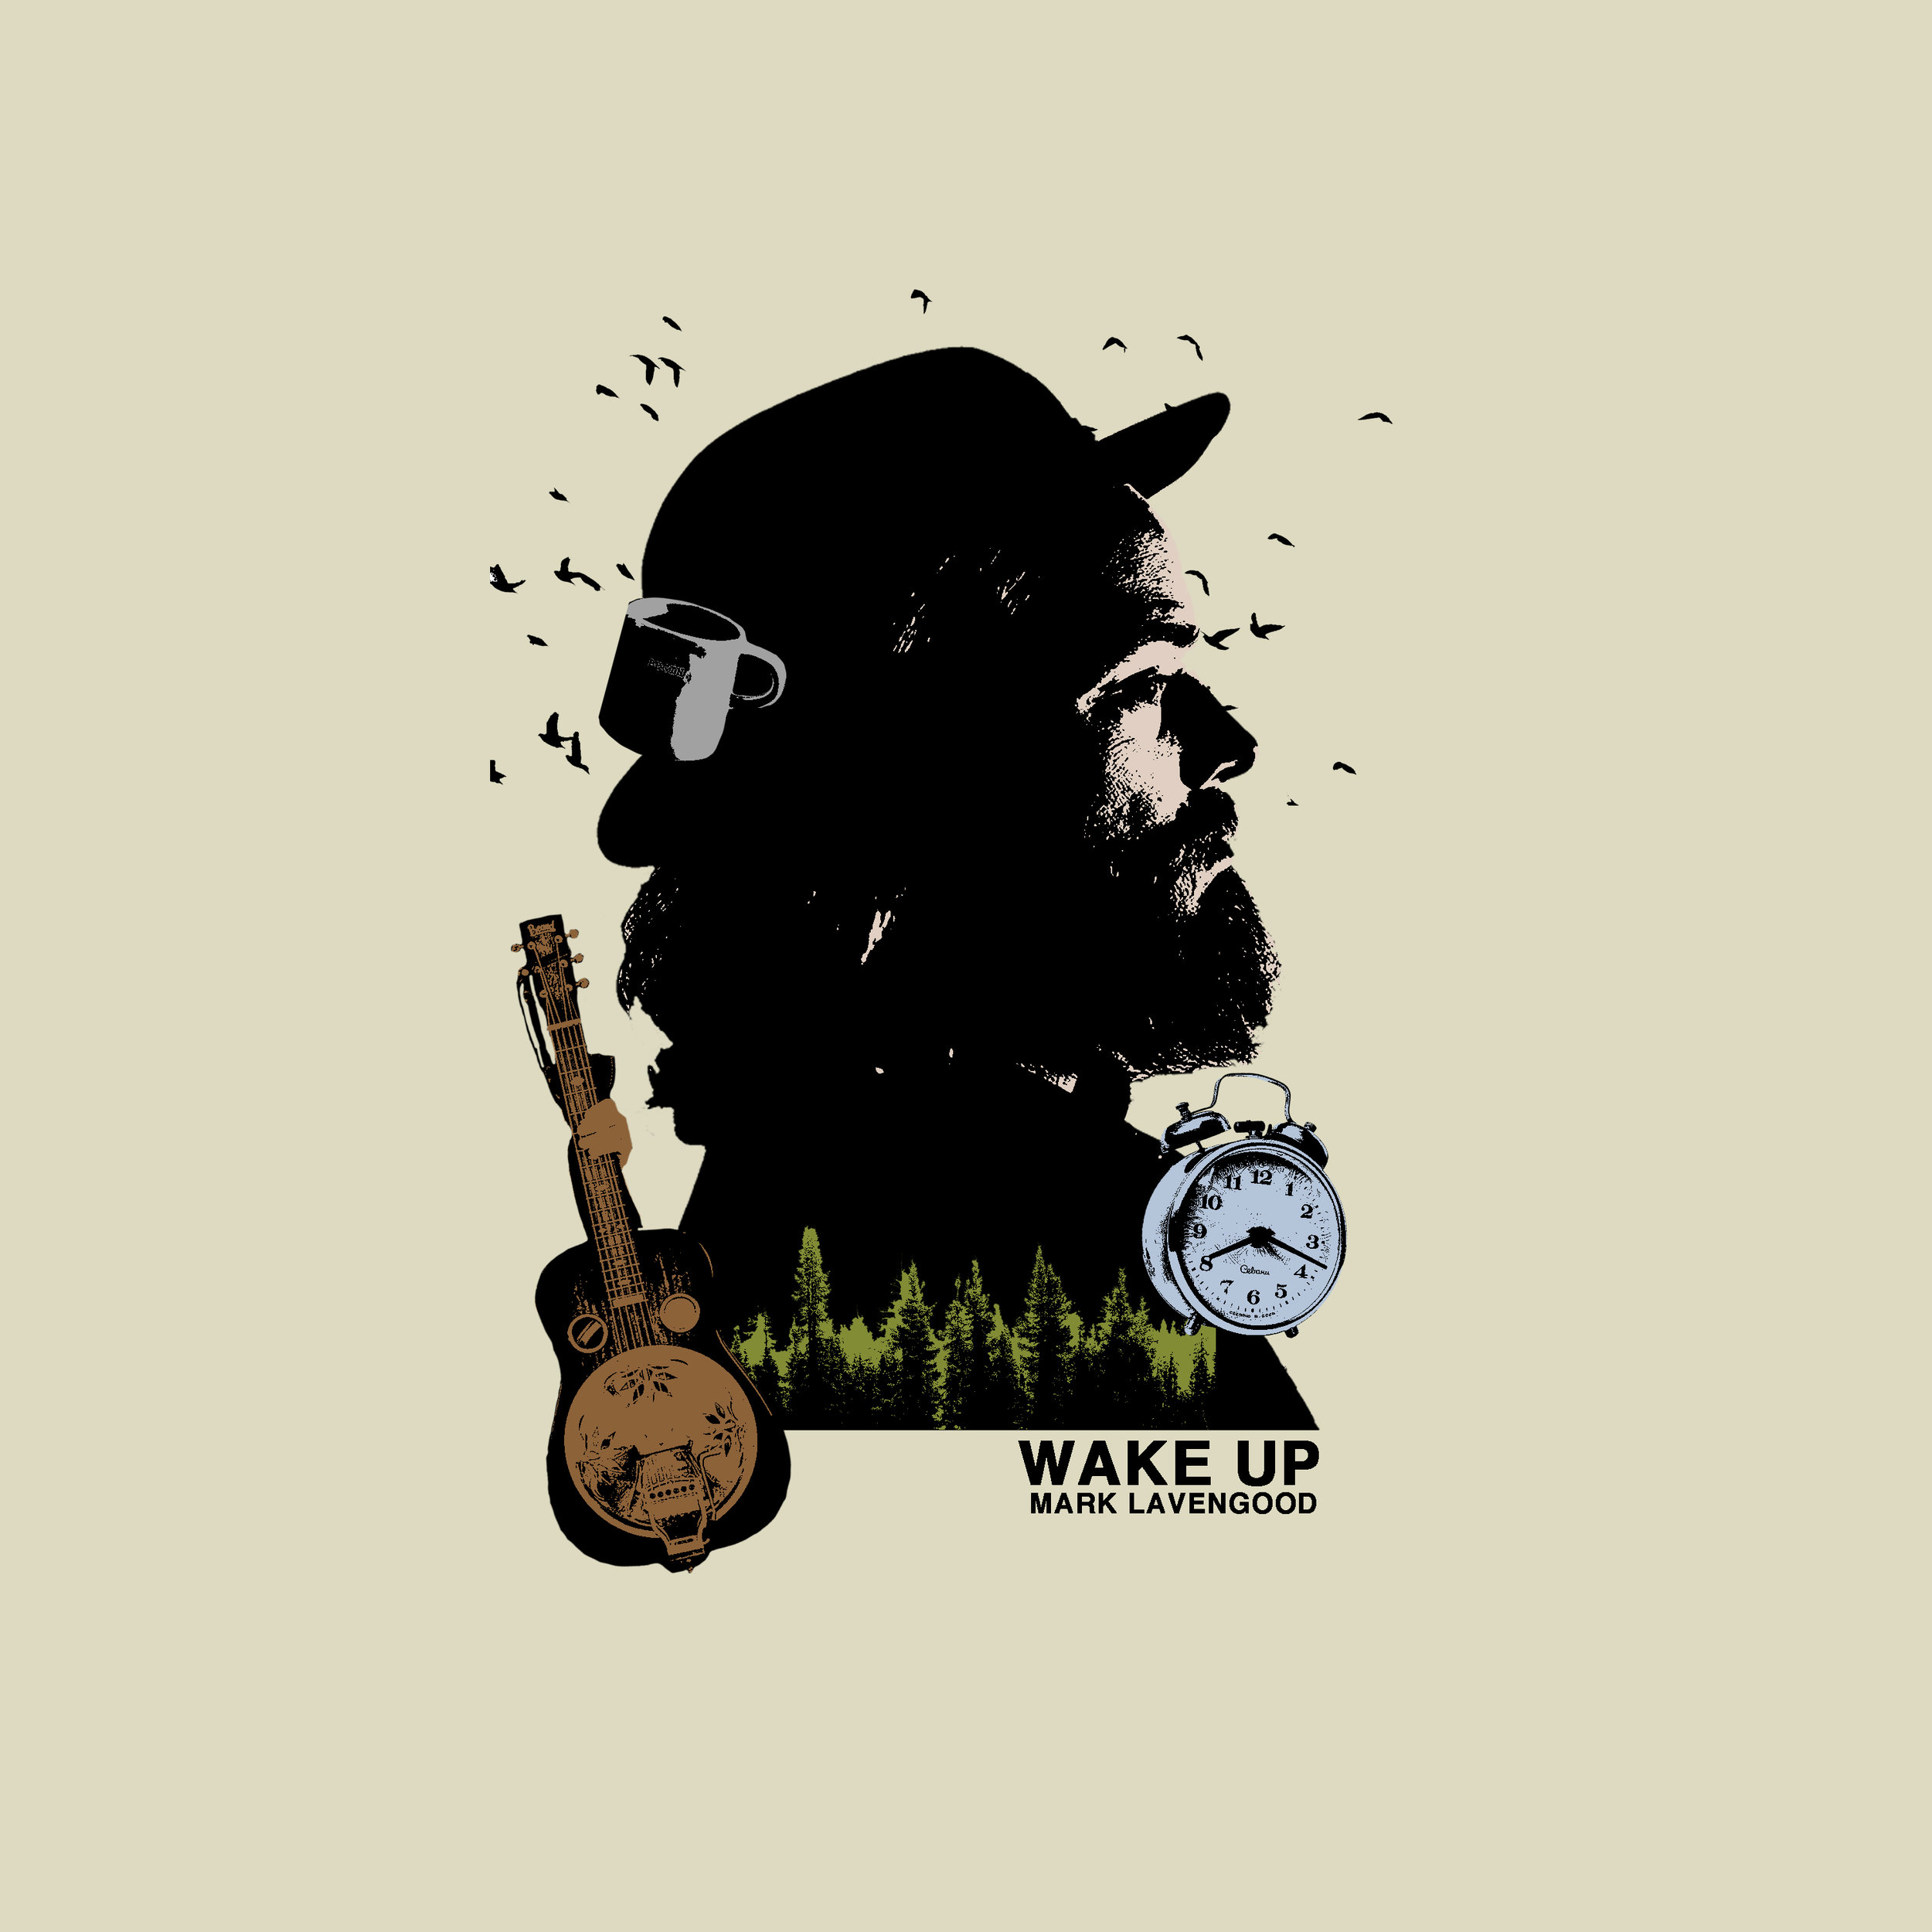 Wake-Up-Single-Art.jpg